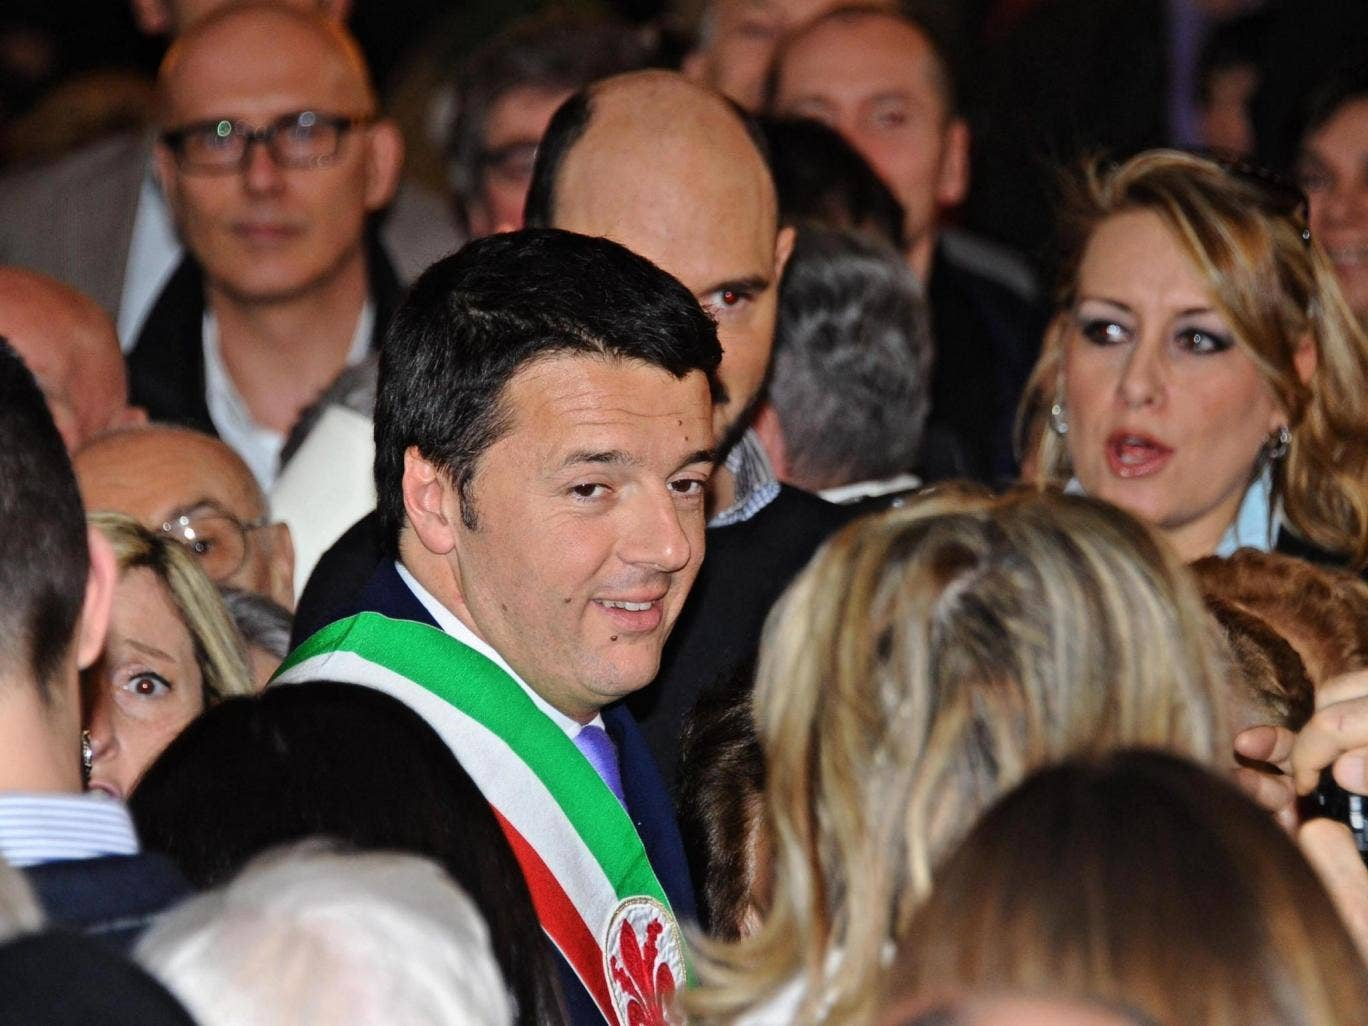 Democratic Party (PD) leader and Florence Mayor, Matteo Renzi (centre) smiles during a ceremony at the Palazzo Vecchio in Florence